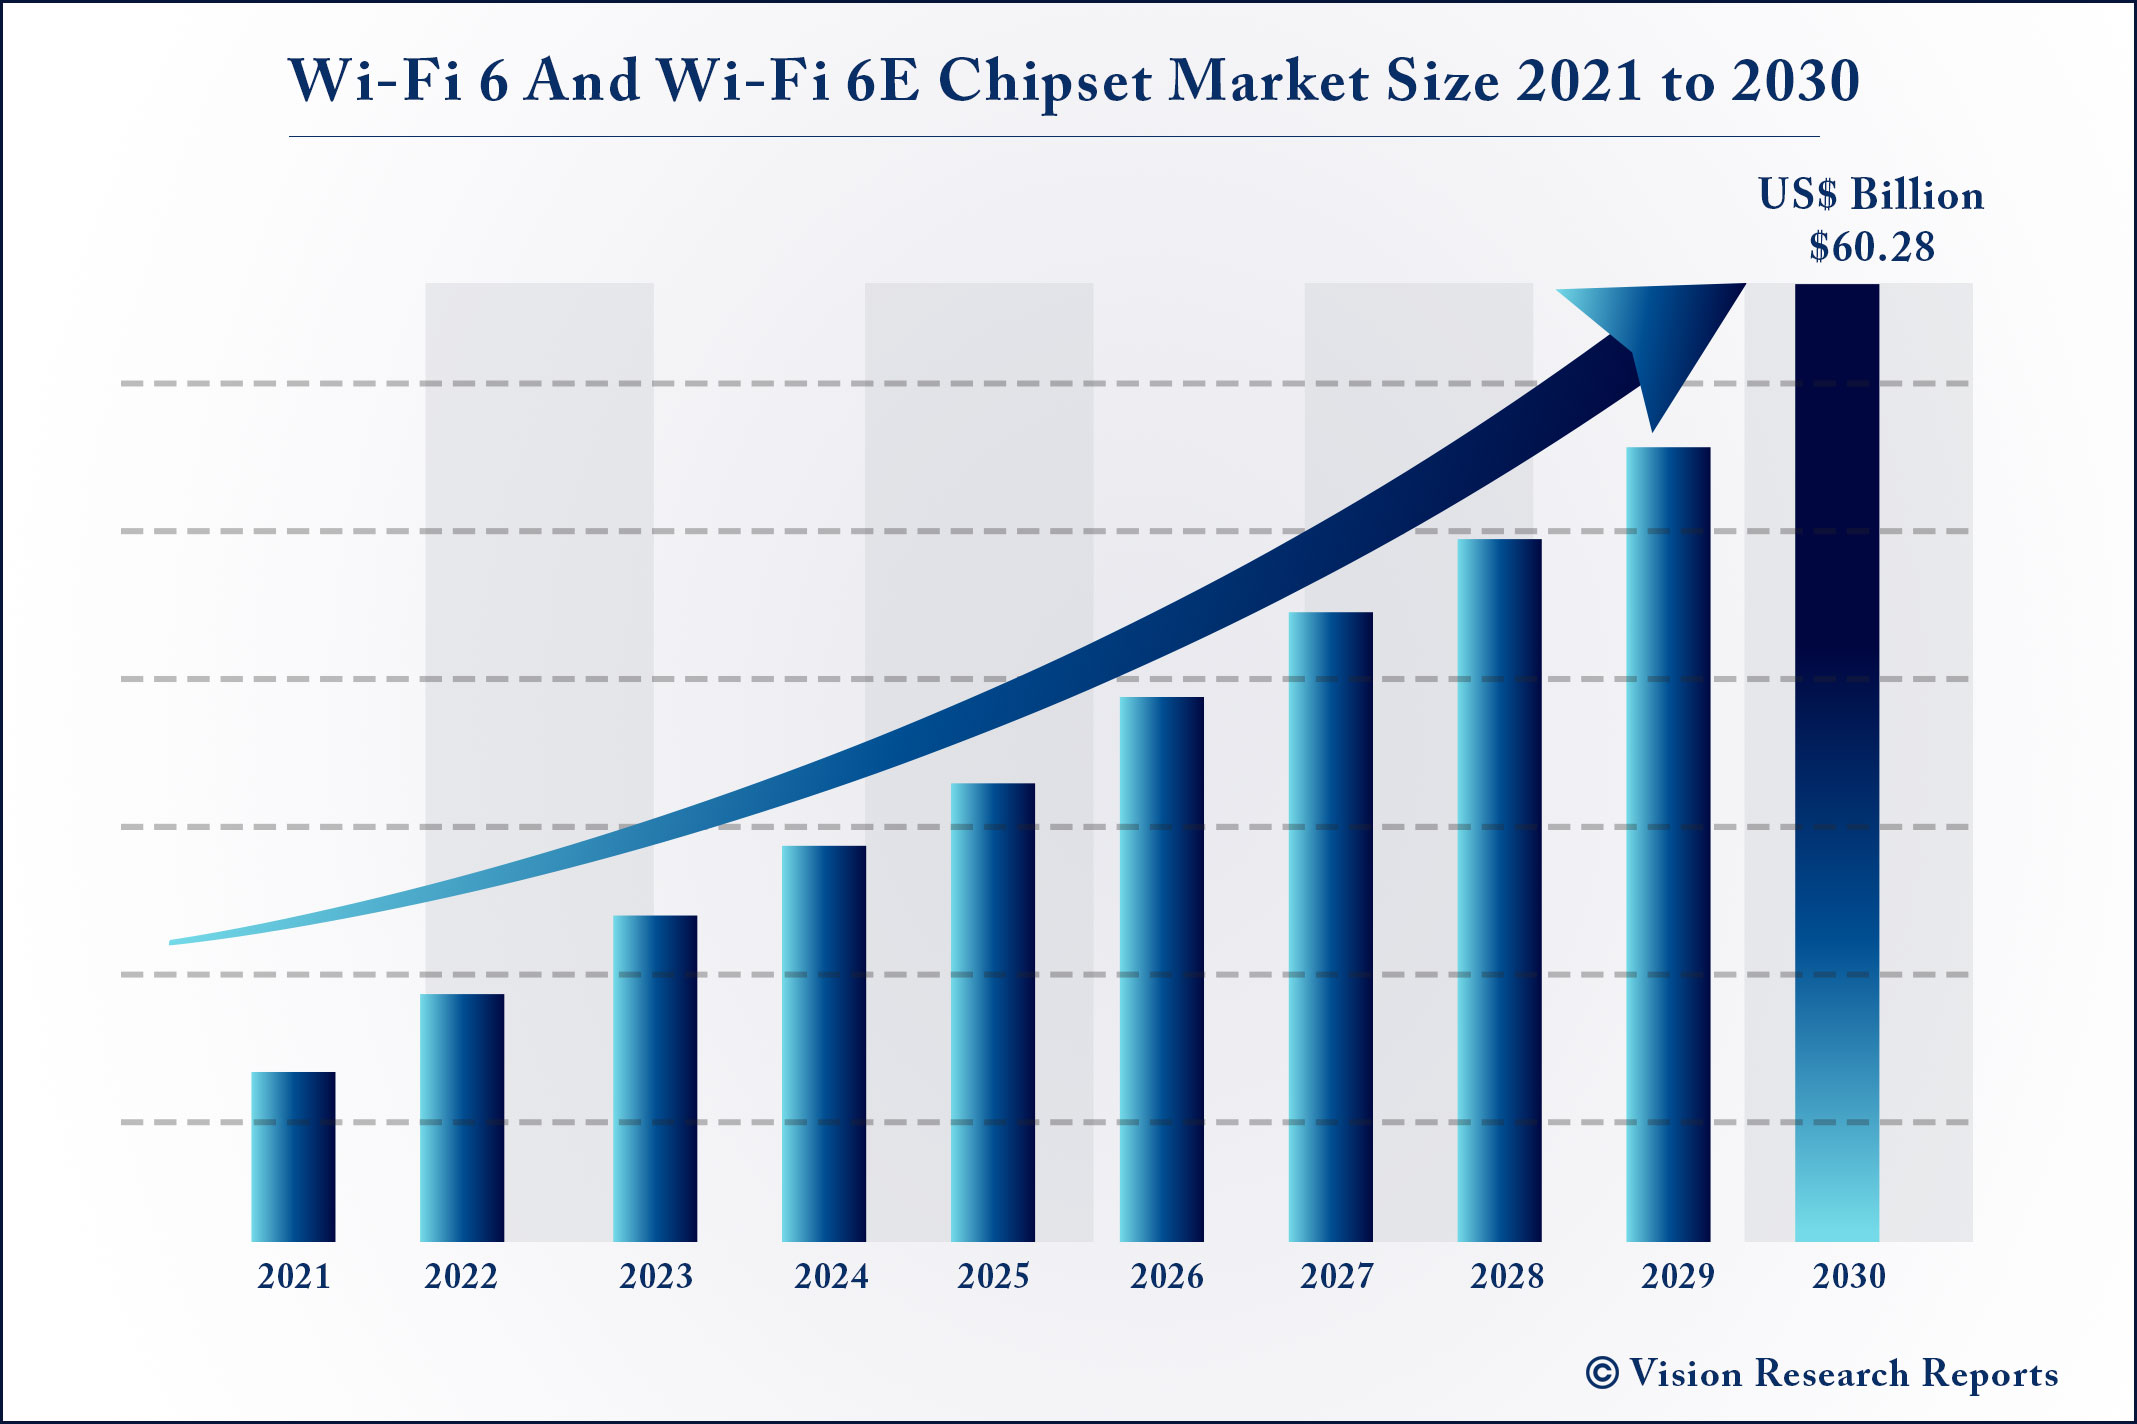 Wi-Fi 6 And Wi-Fi 6E Chipset Market Size 2021 to 2030